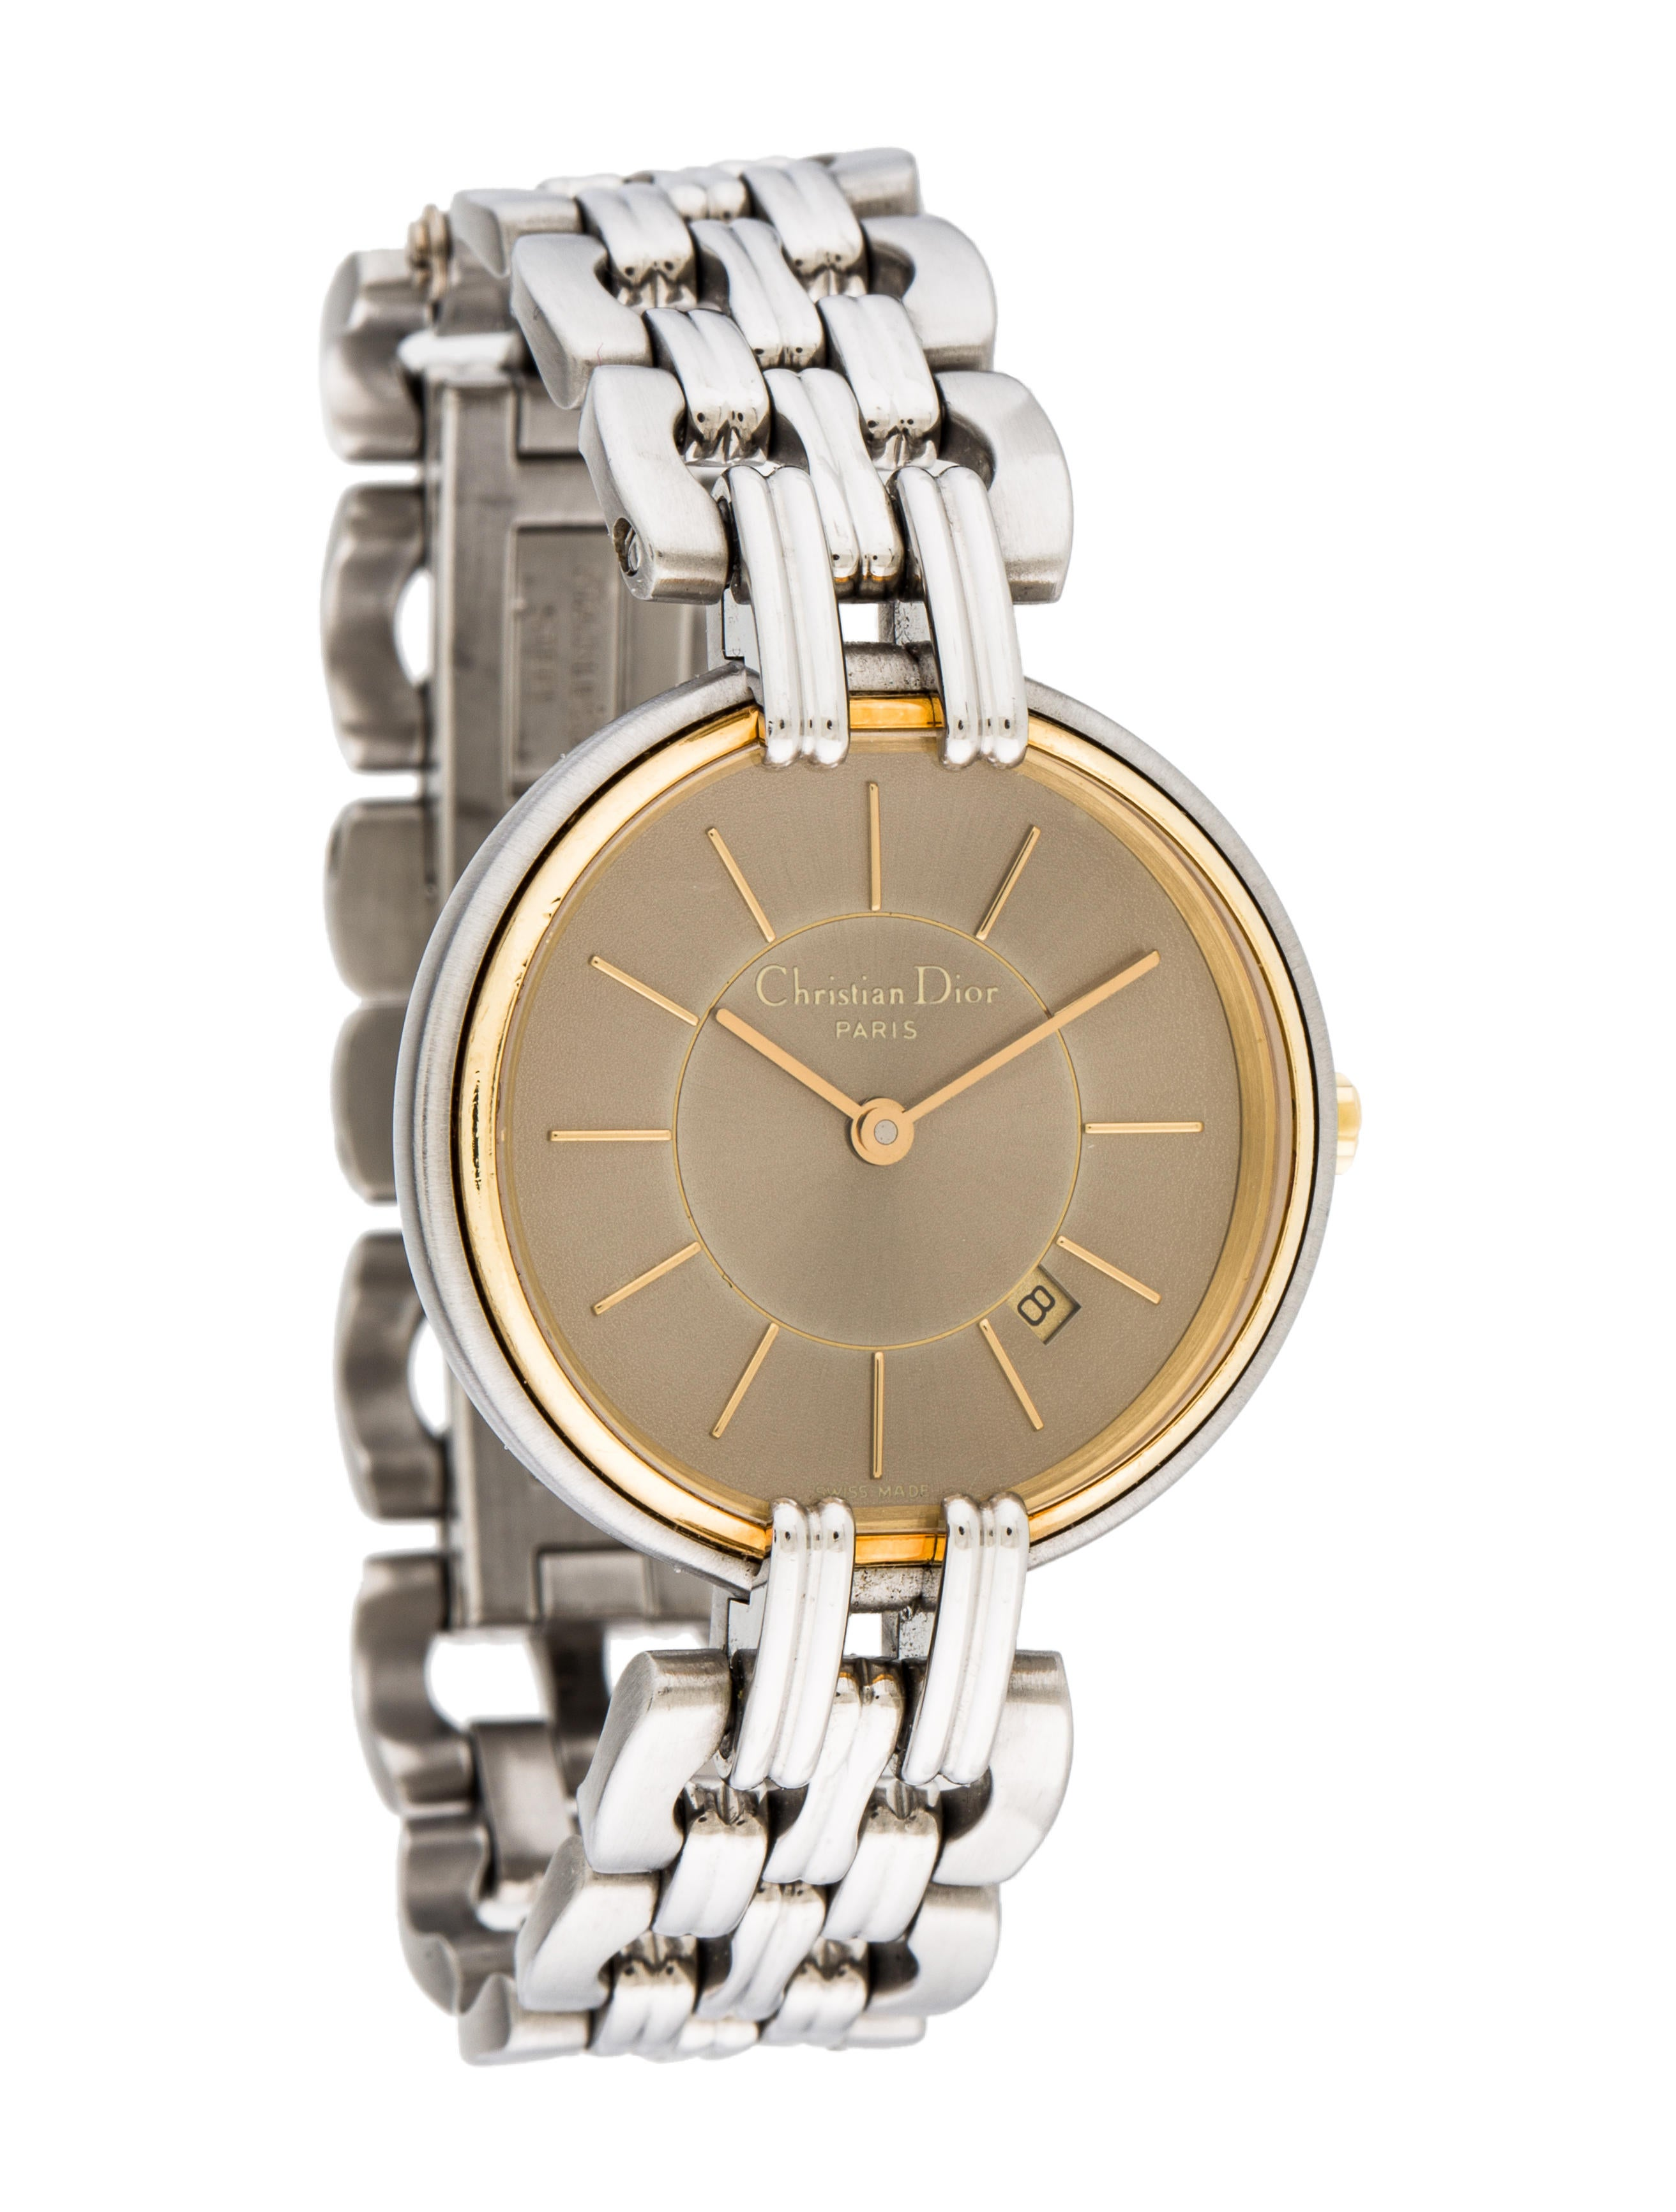 Christian dior watch bracelet chr57789 the realreal for Christian dior watches